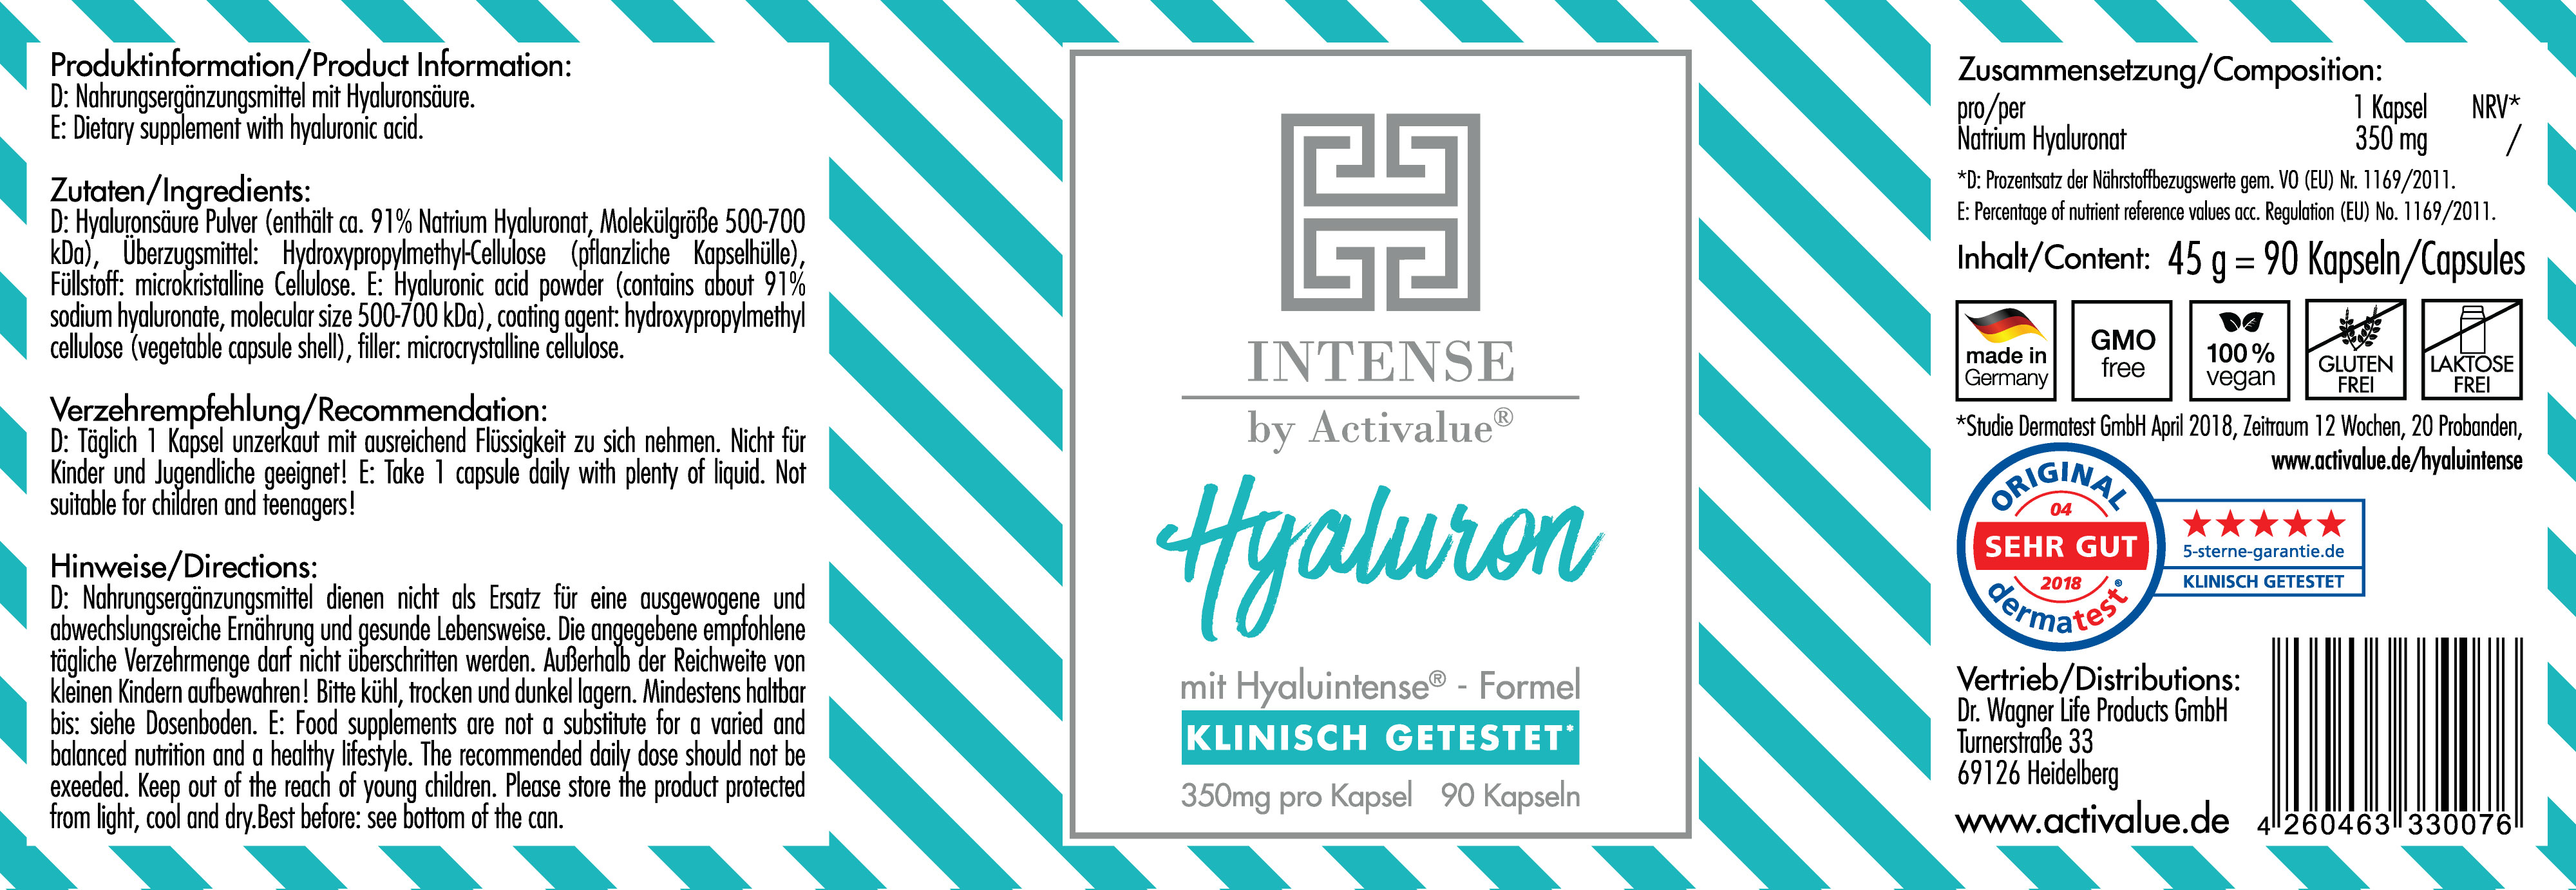 INTENSE_Hyaluron_Label